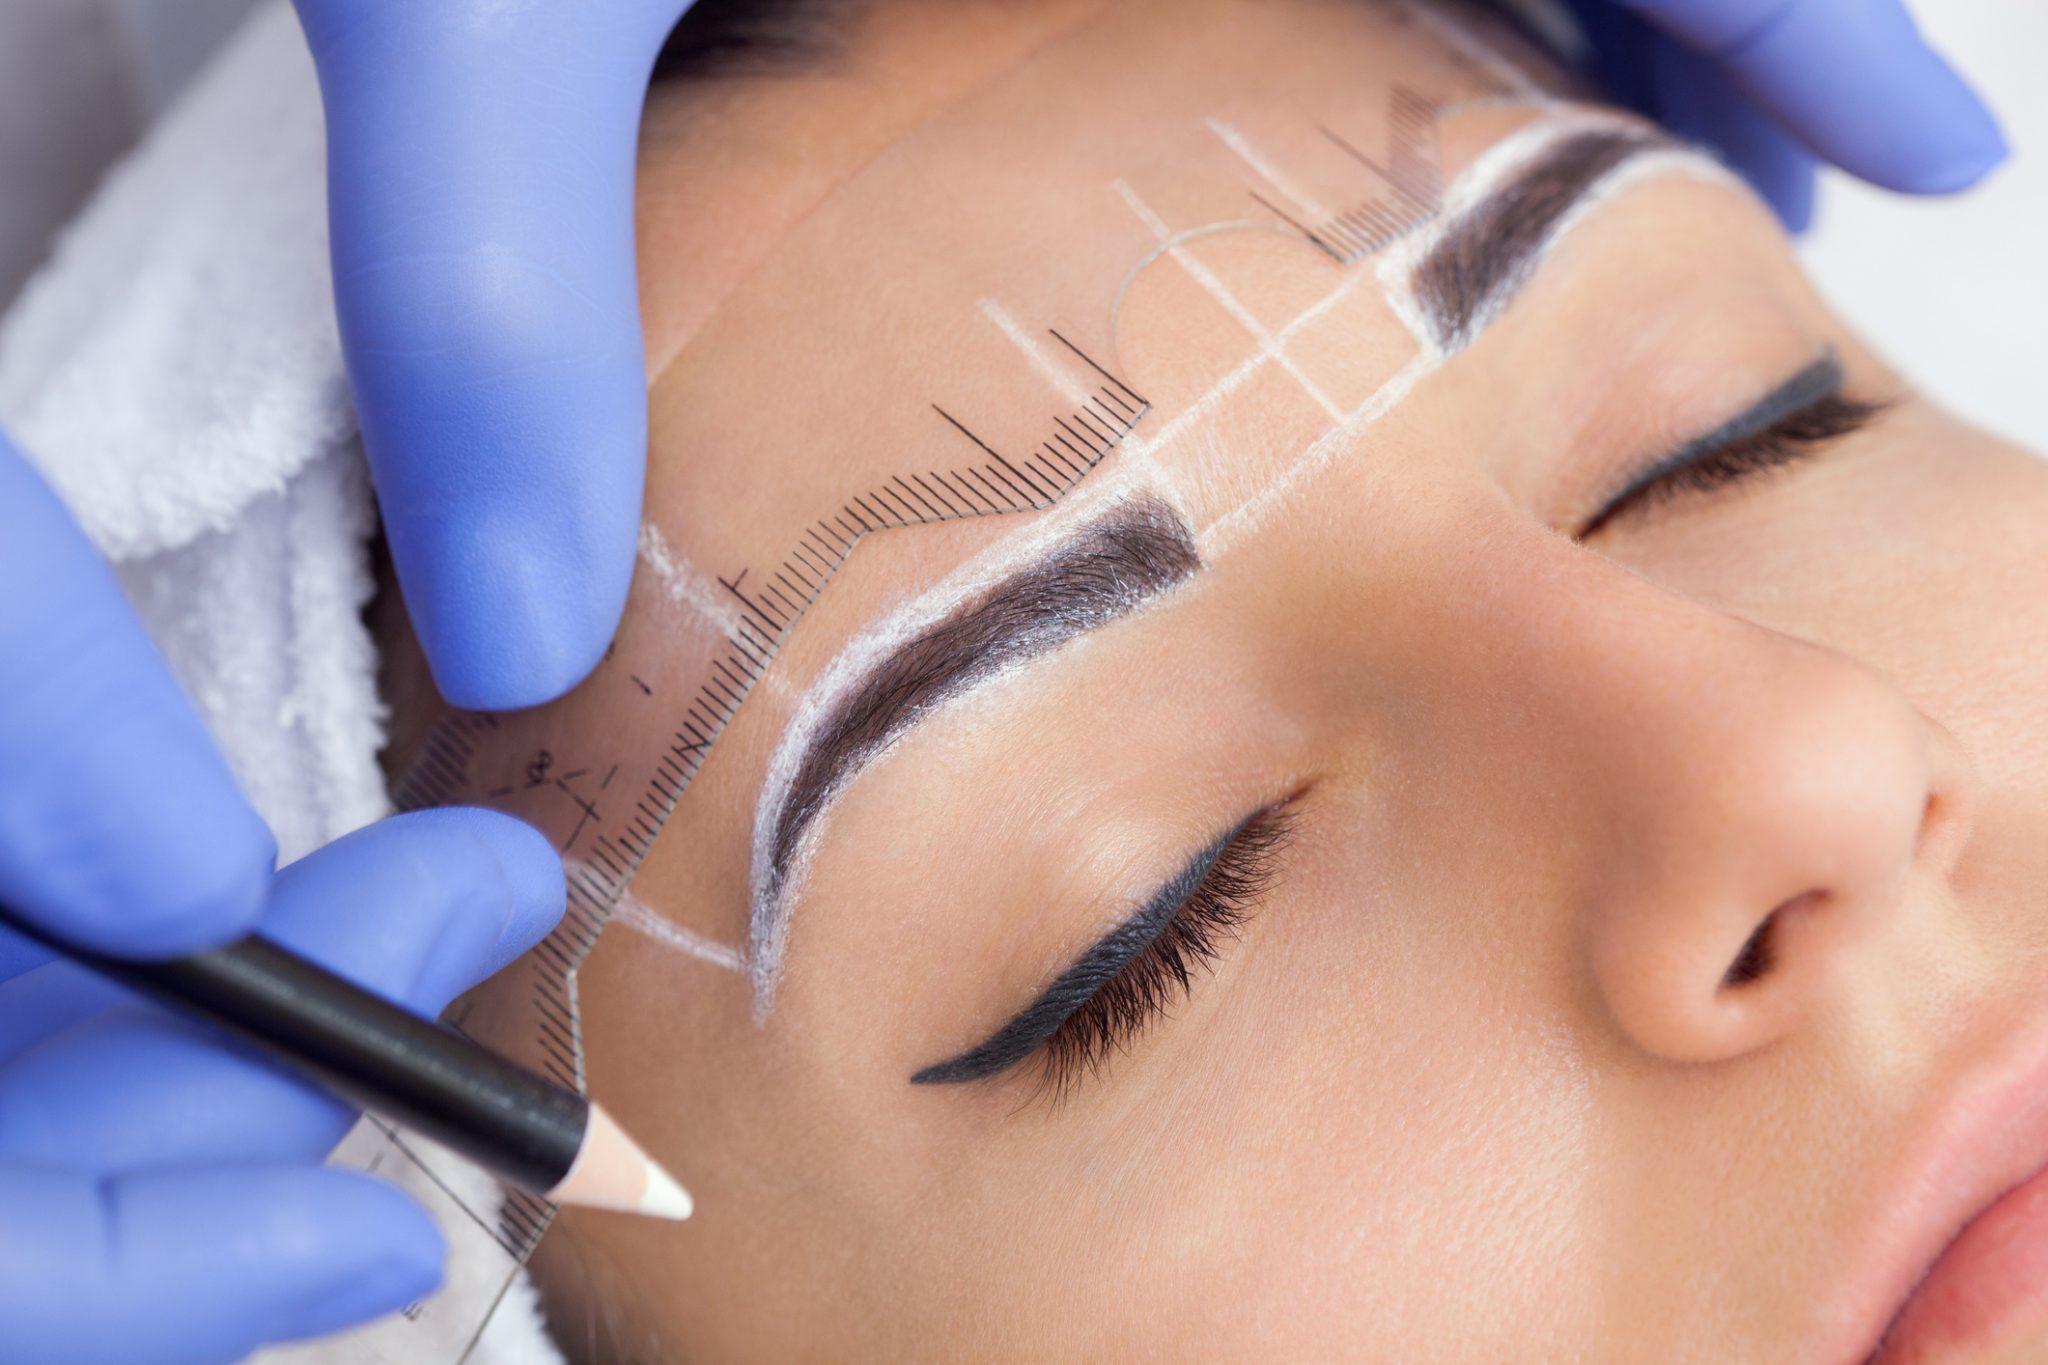 What is it really like to have your eyebrows microbladed?